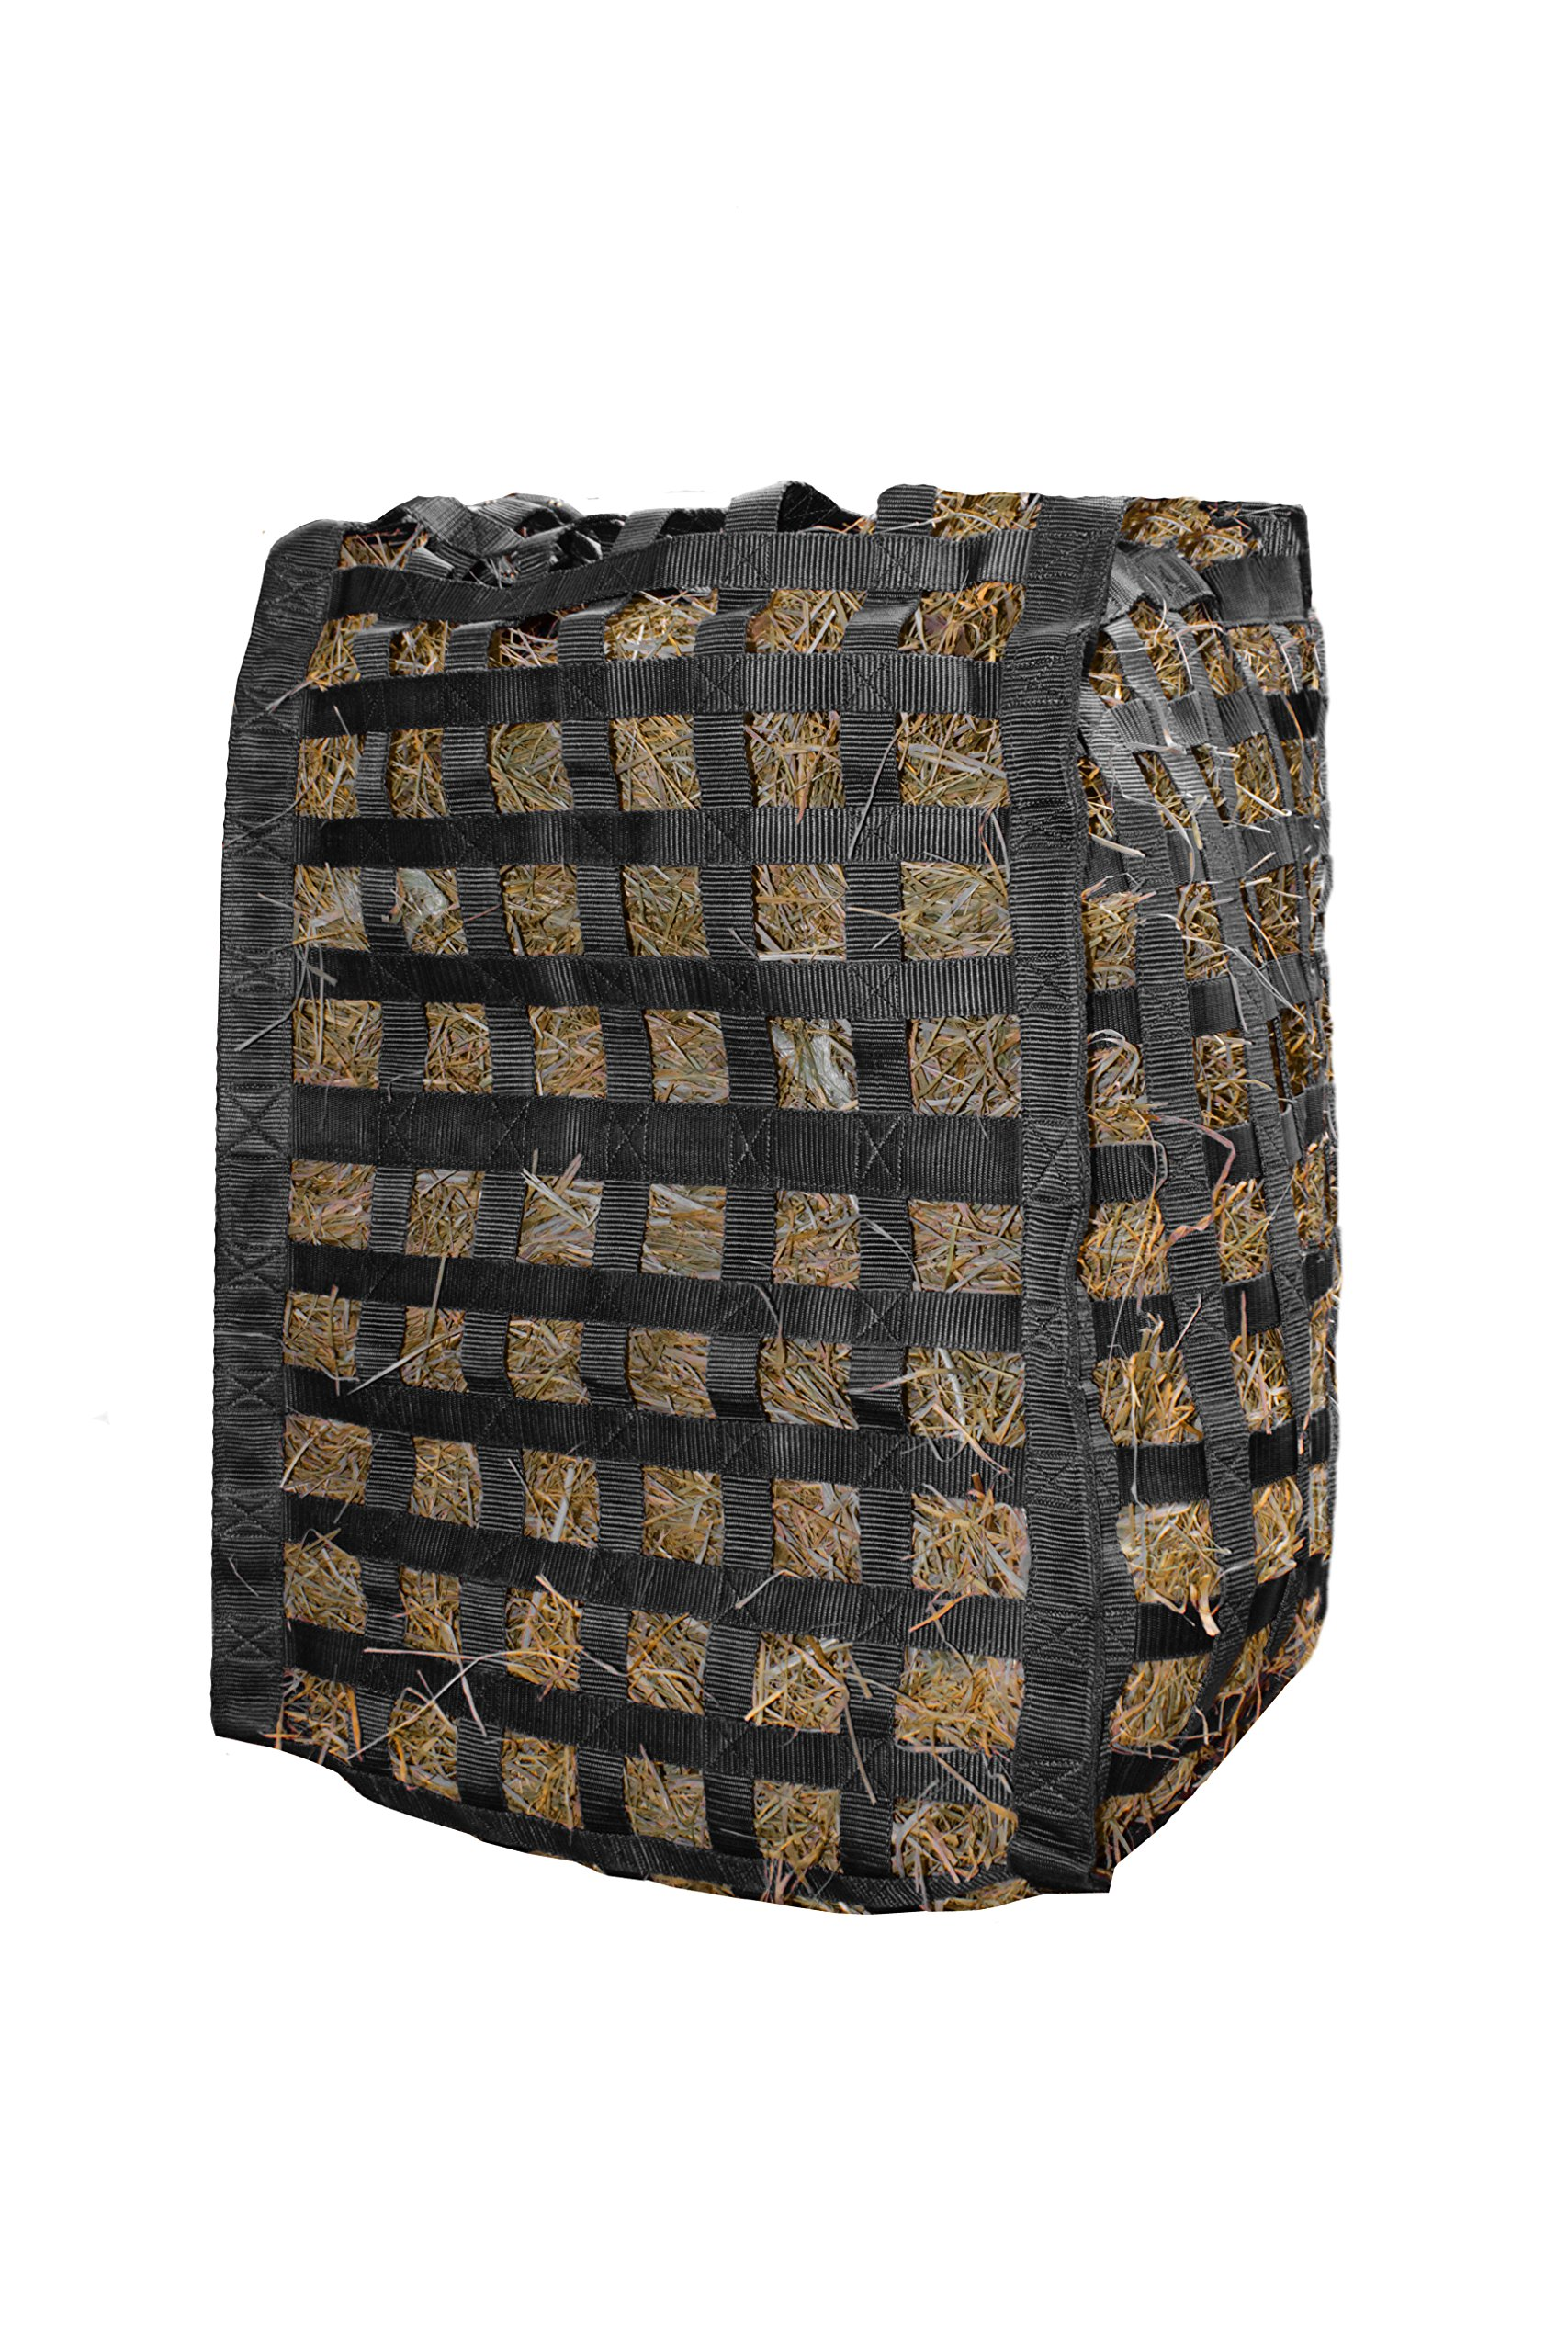 Derby Originals Natural Grazer Patented Four Sided Slow Feed Horse Hay Bag with One Year Warranty by Derby Originals (Image #1)